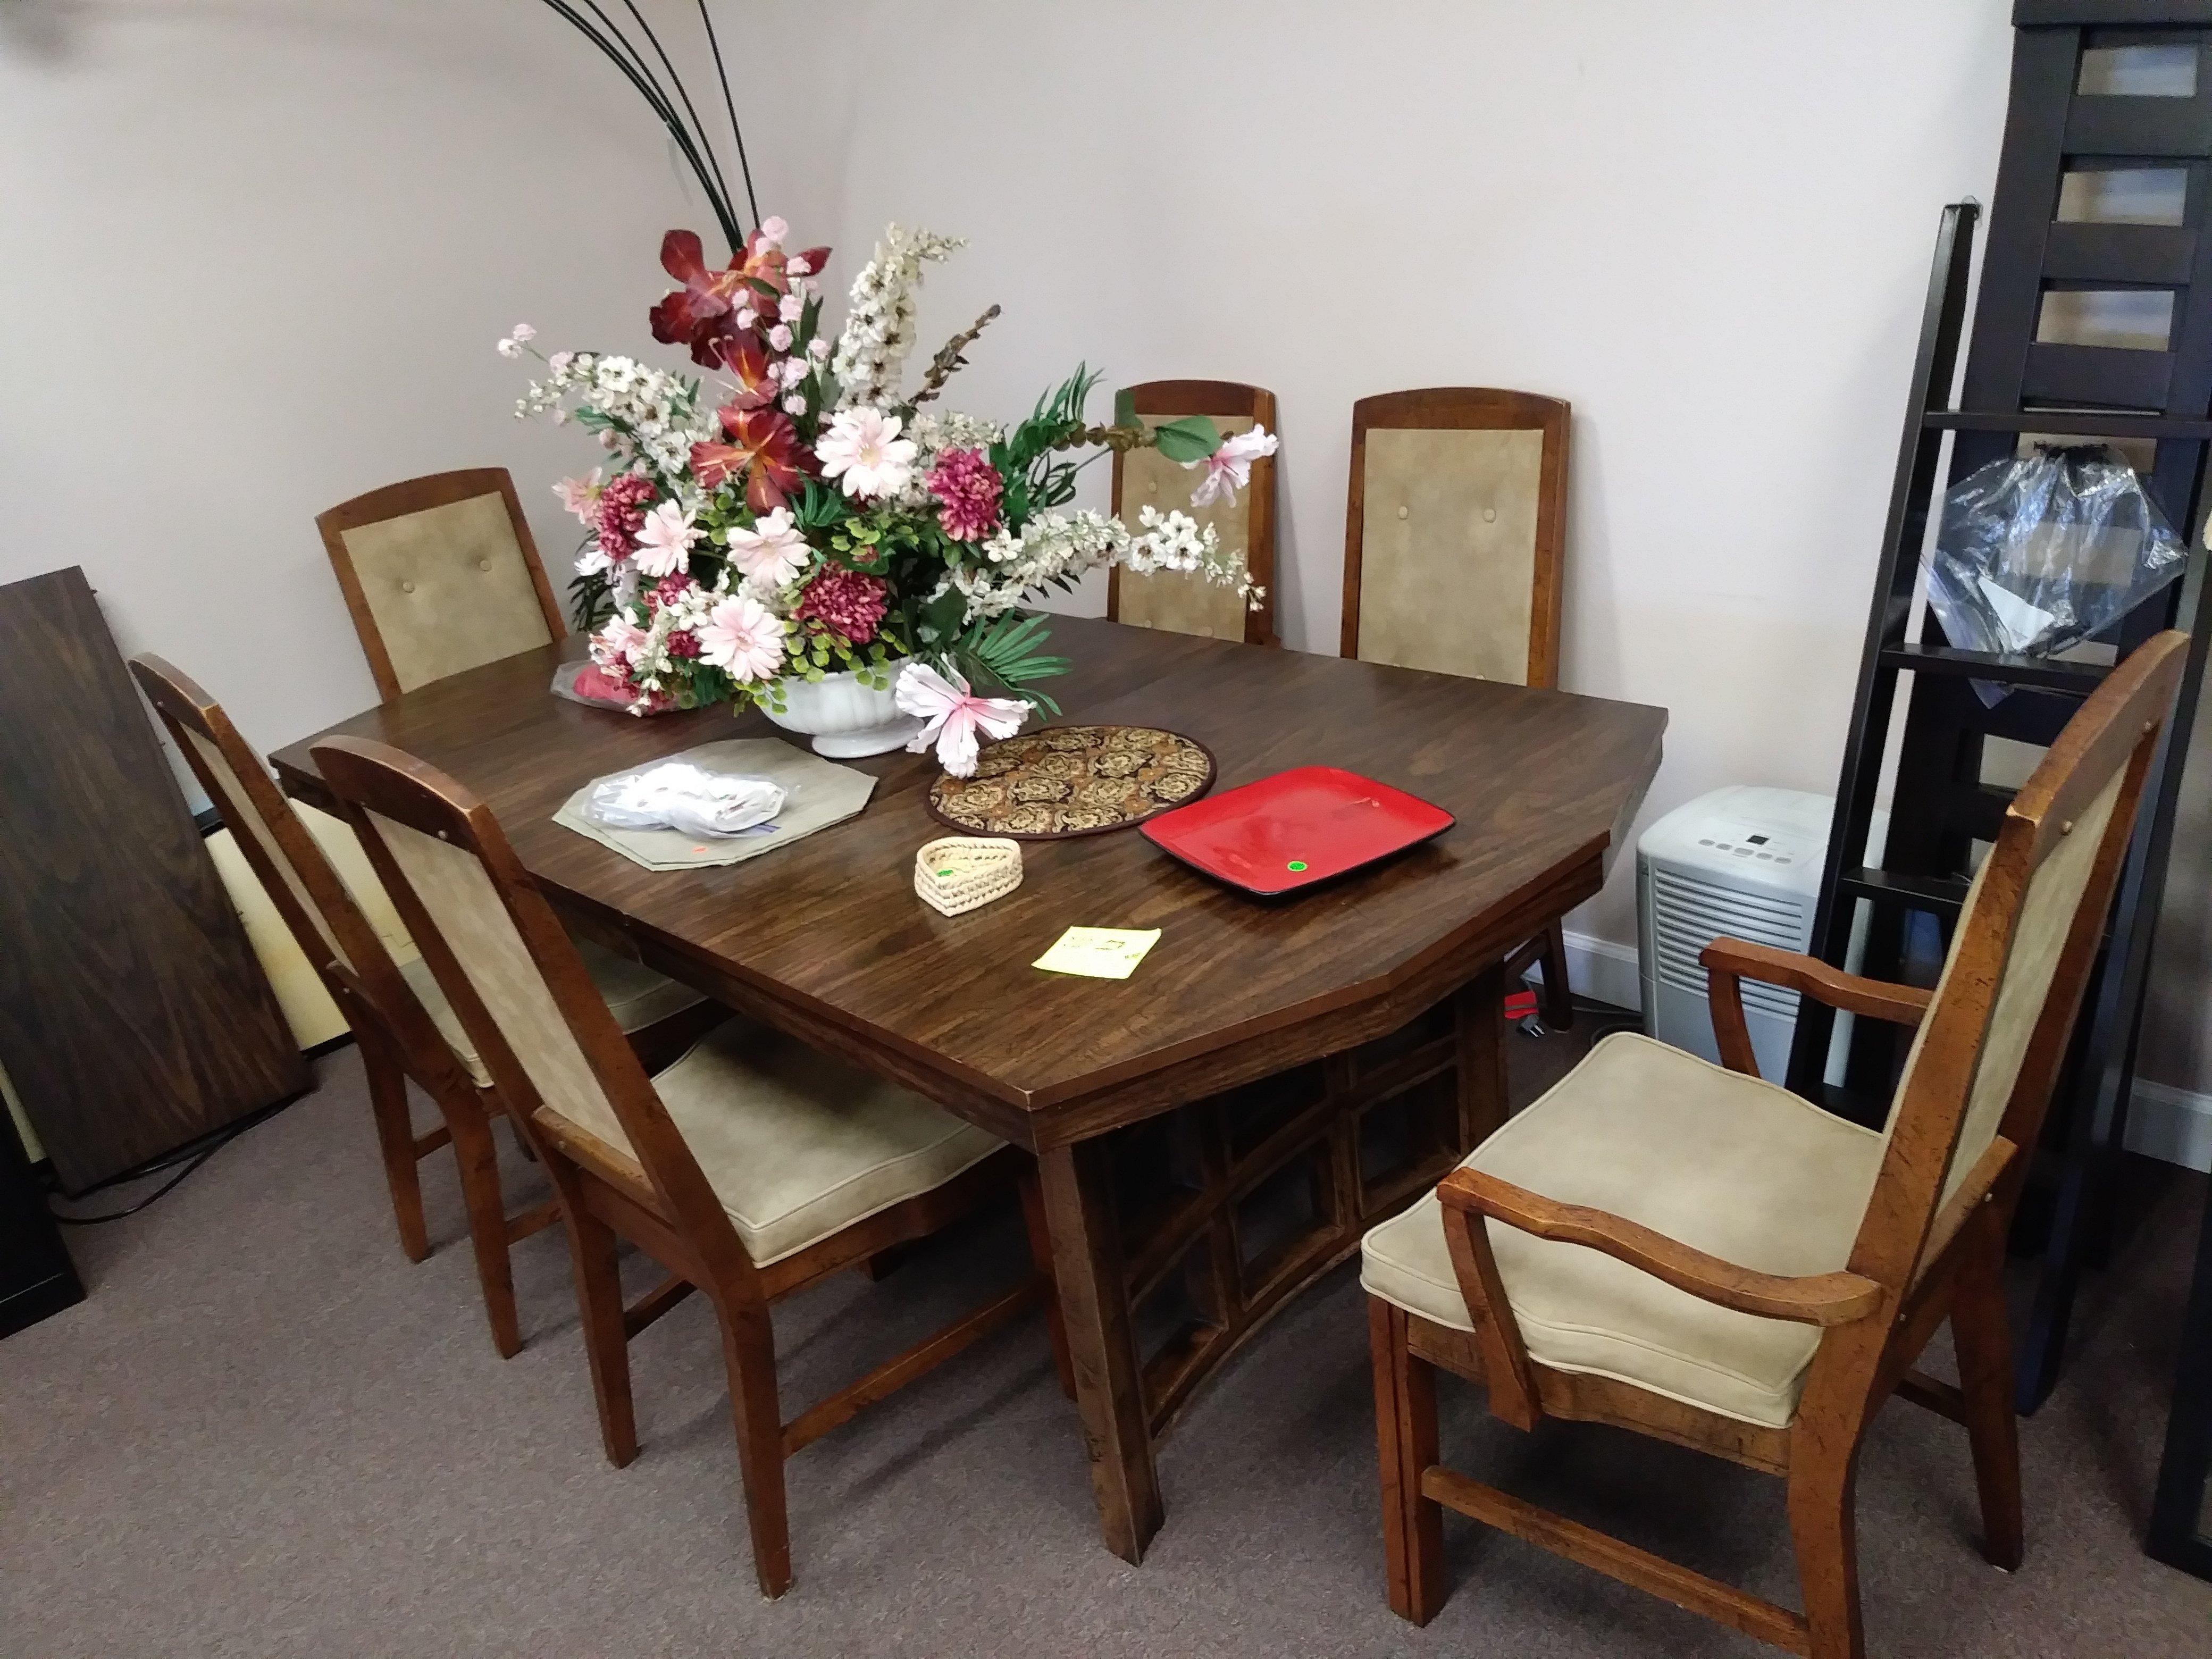 """8 Foot 5 1/2"""" Long Wooden Dining Room Table With Removable Leaves 0006"""